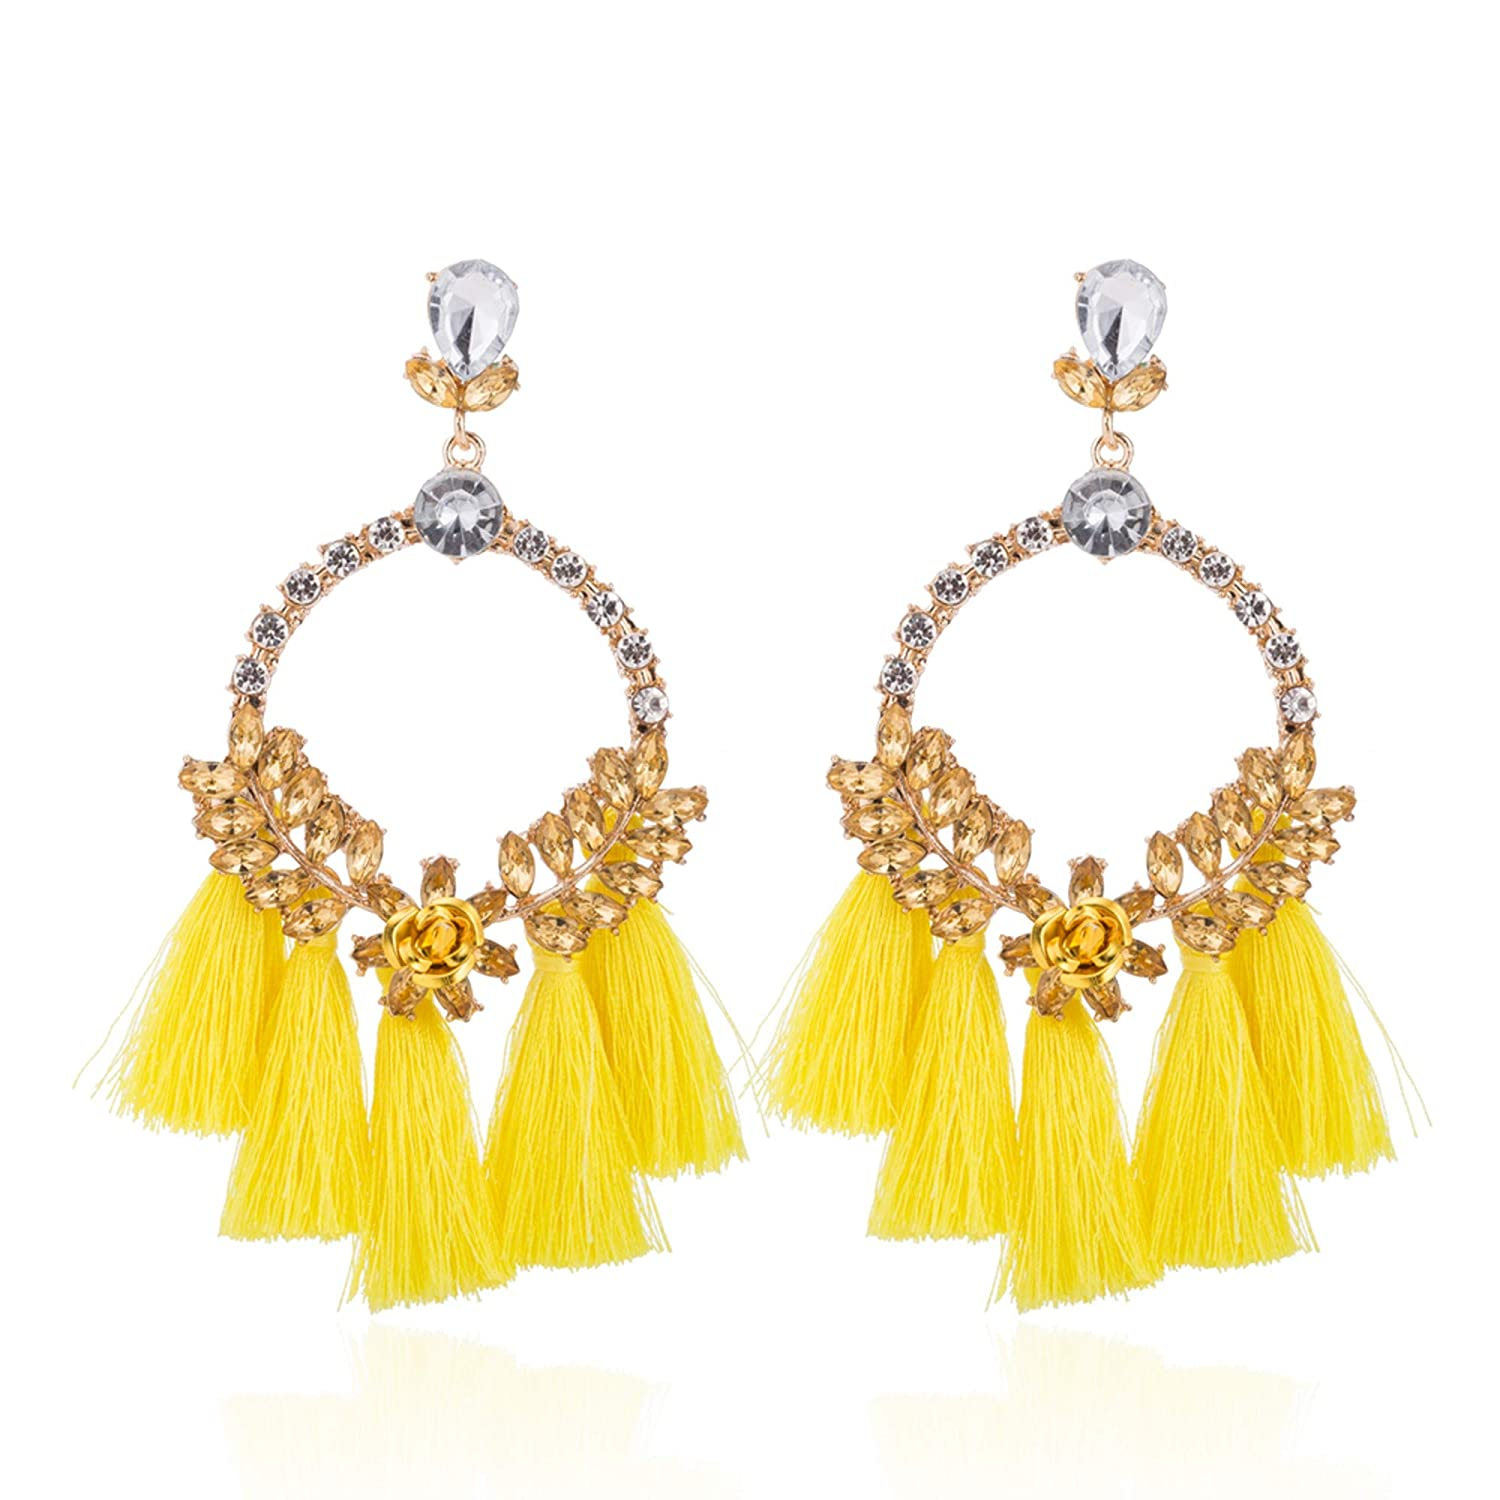 national style fashion earrings alloy inlaid drill new earrings FoxLegend Womans Hot-selling jewelry small flower round ear studs